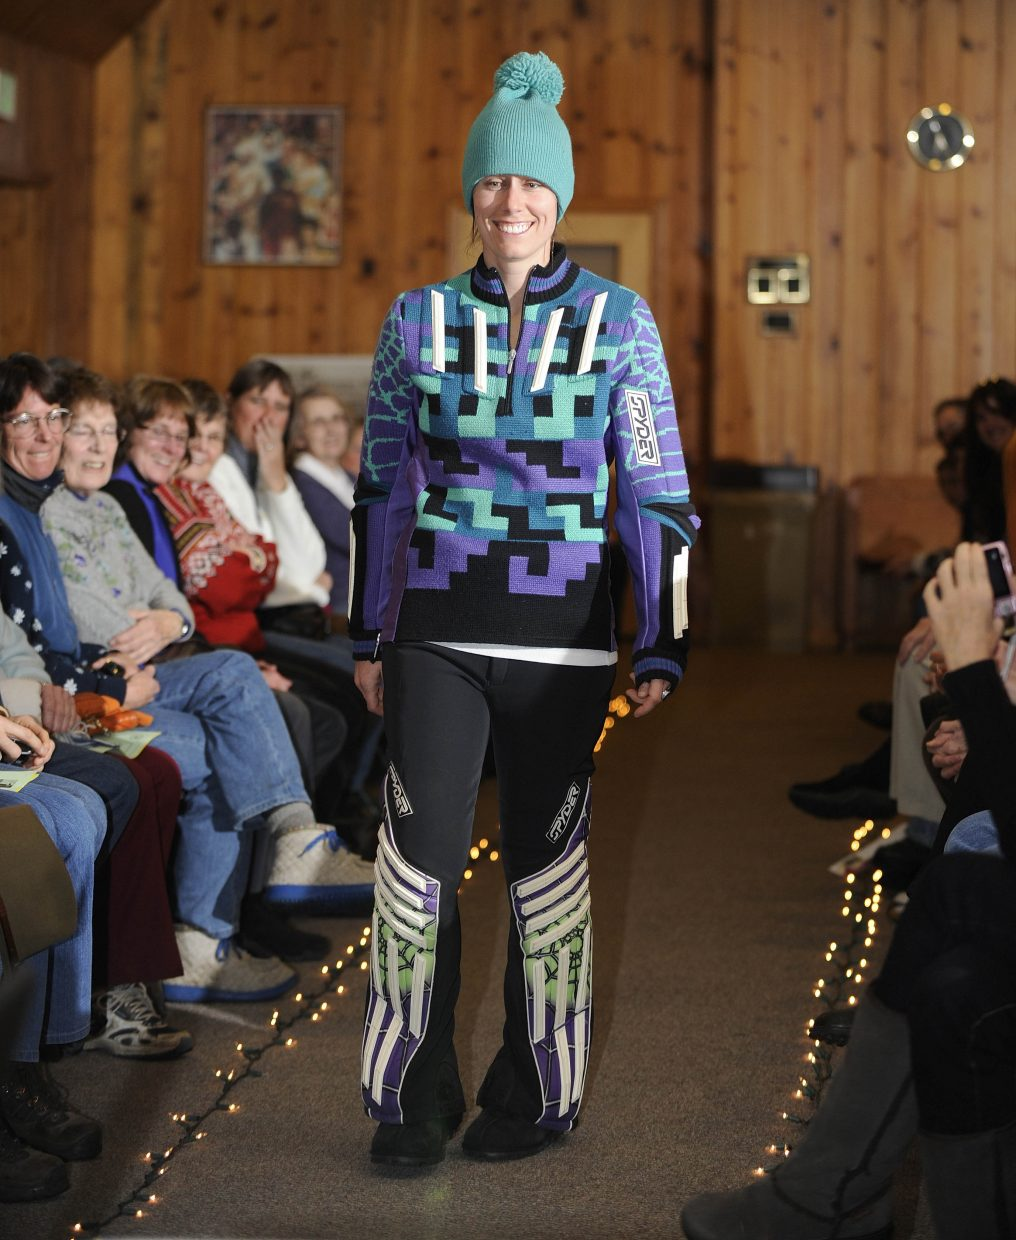 Amy Harrell participates in the Tread of Pioneers Museum's Vintage Ski Fashion Show.